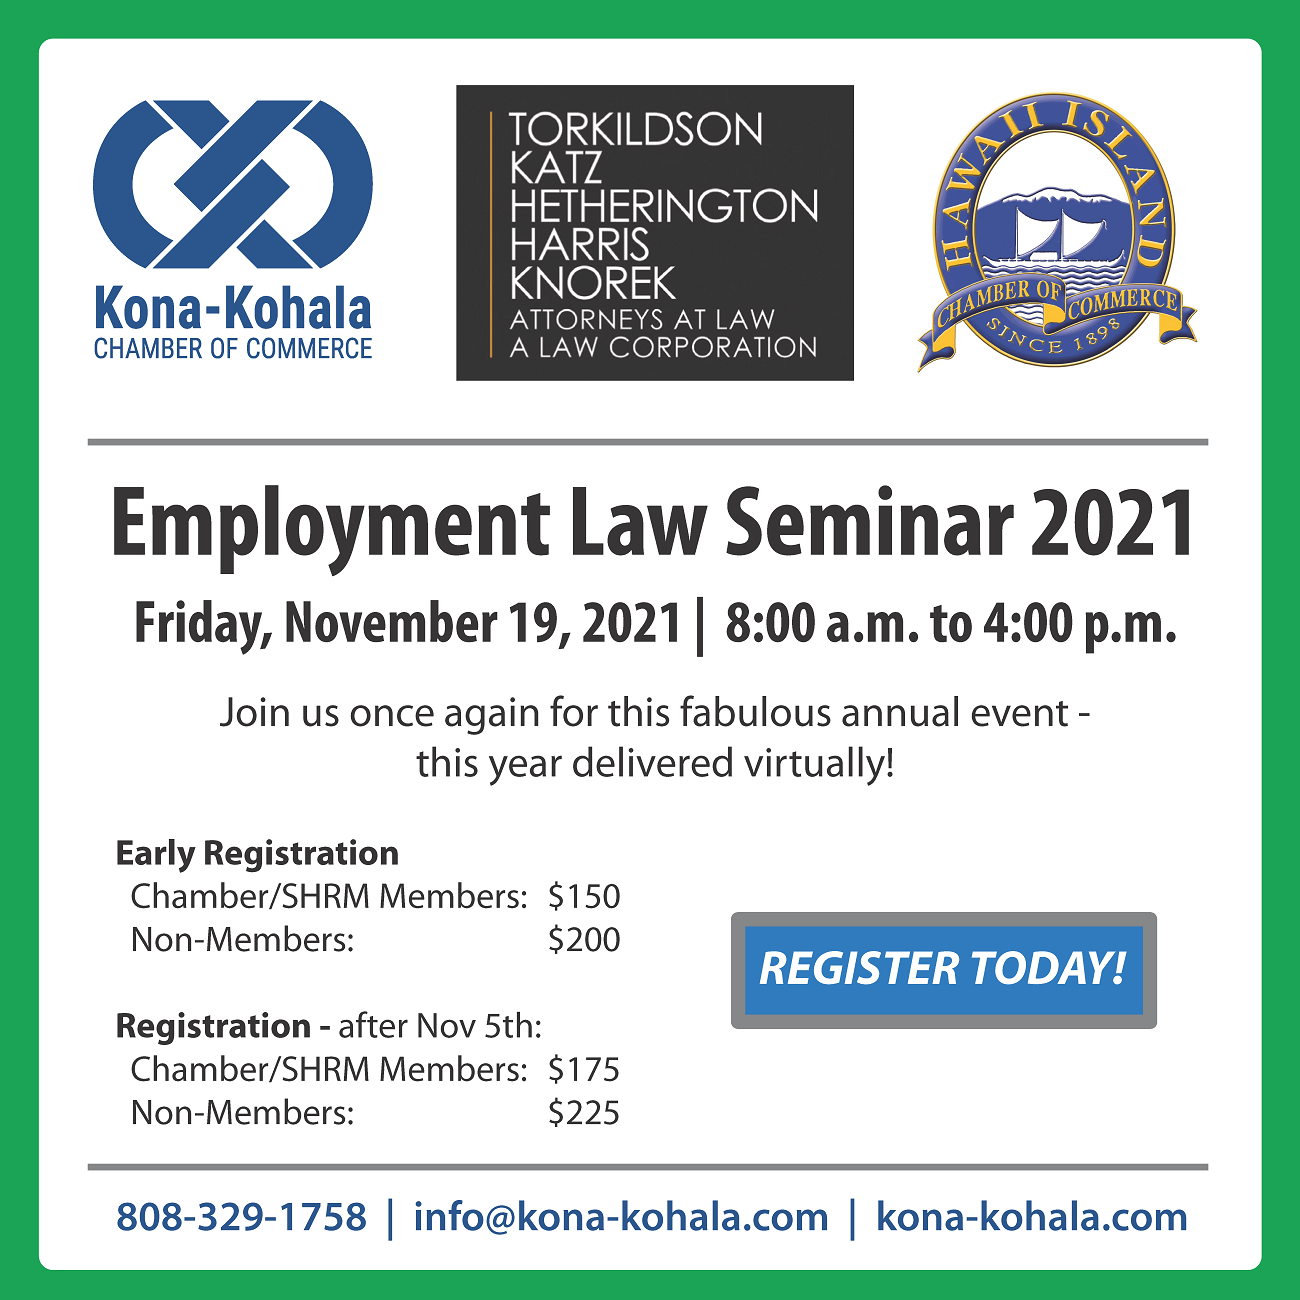 Employment Law Seminar 2021 - Early Registration Open Now